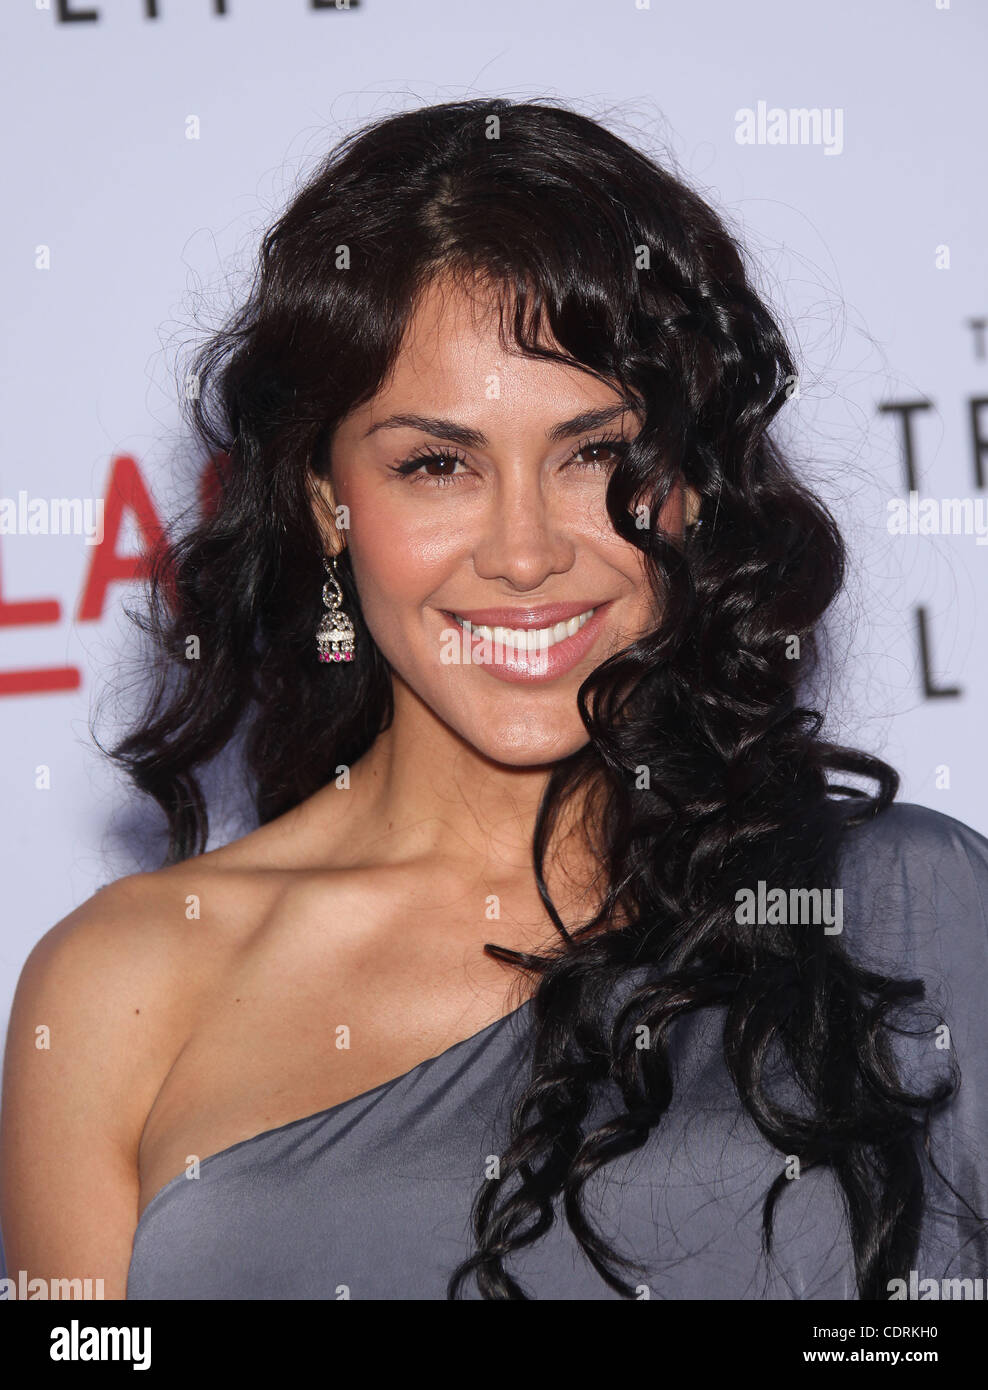 May 24, 2011 - Los Angeles, California, U.S. - CARLA ORTIZ arrives for the premiere of the film 'Tree Of Life' - Stock Image